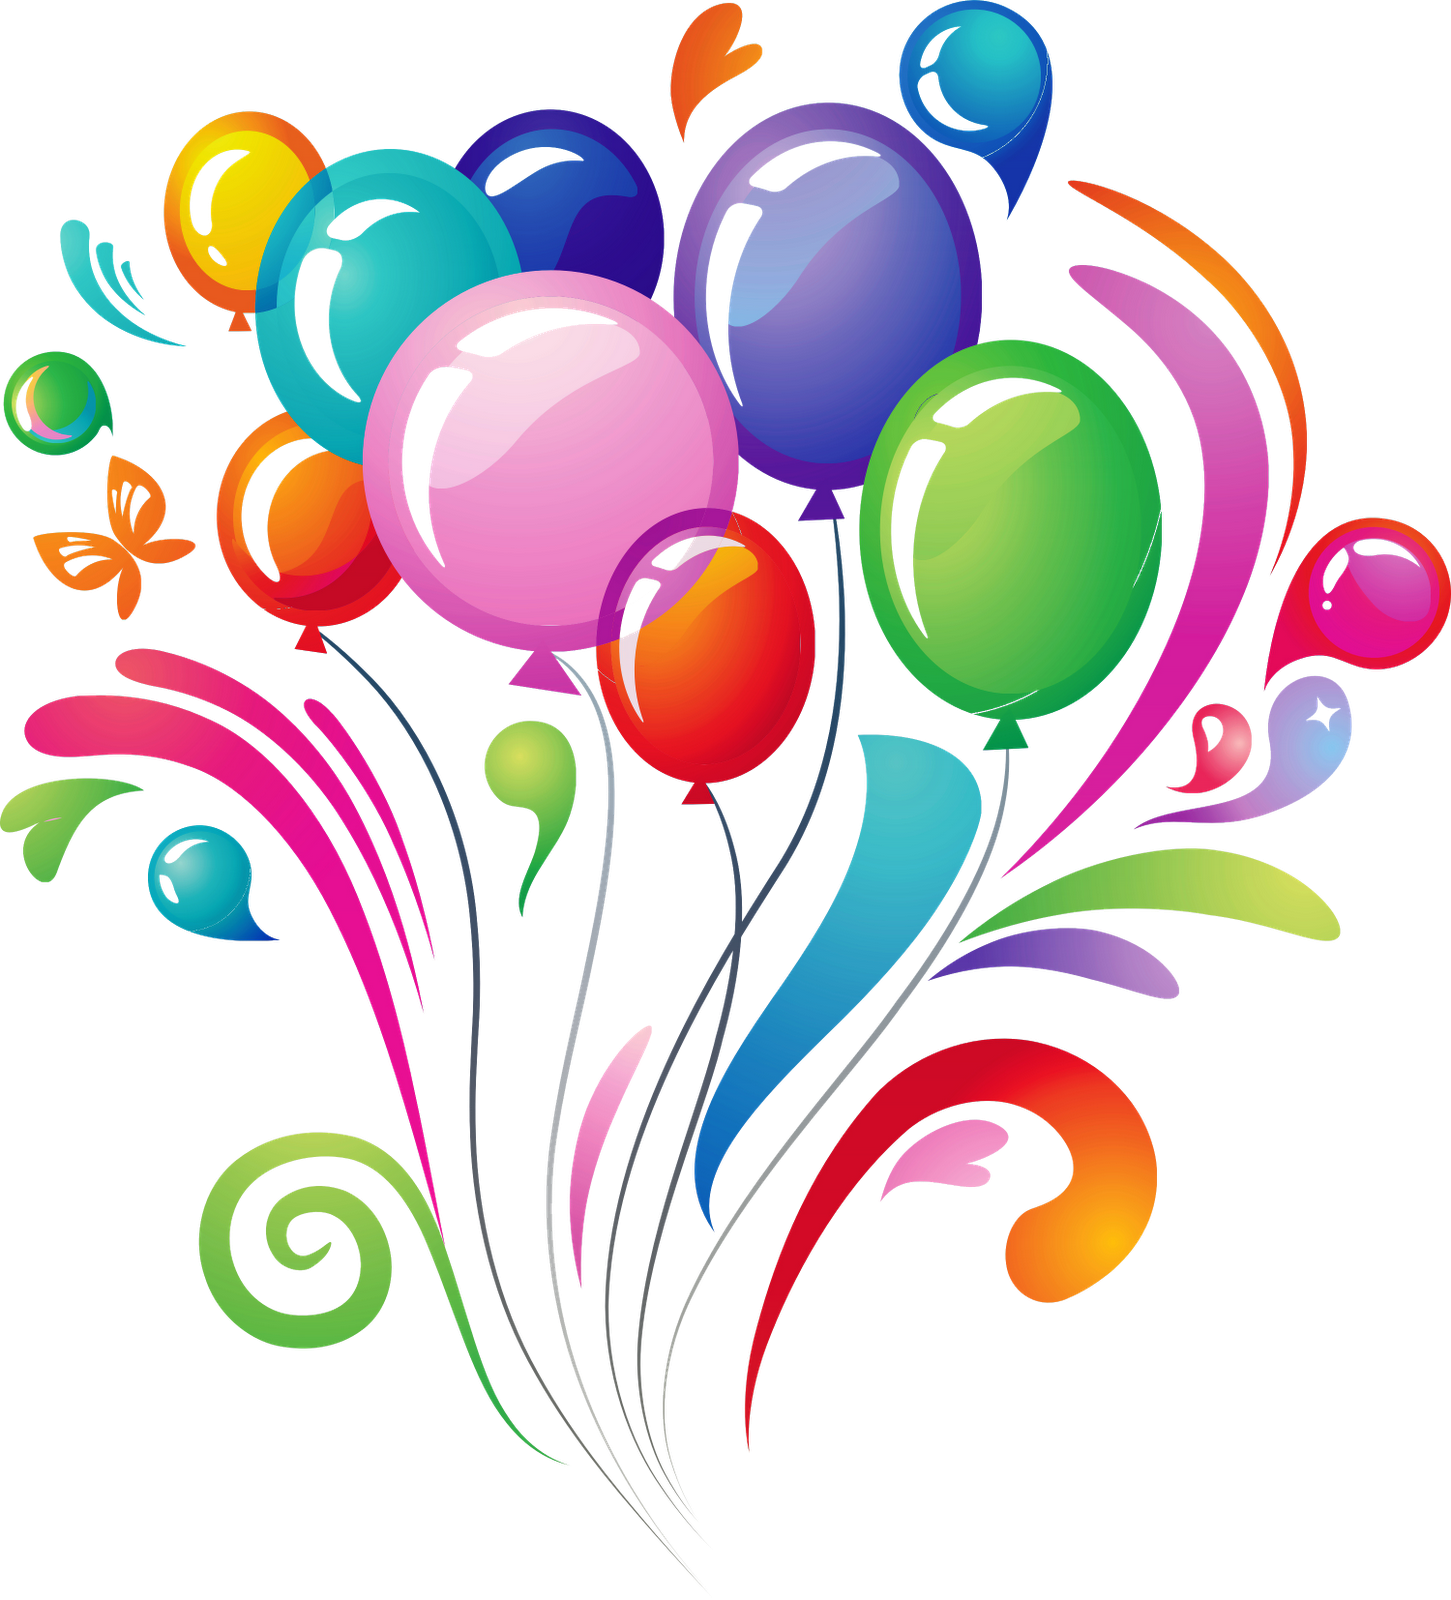 Happy birthday balloons png. Transparent images all photo